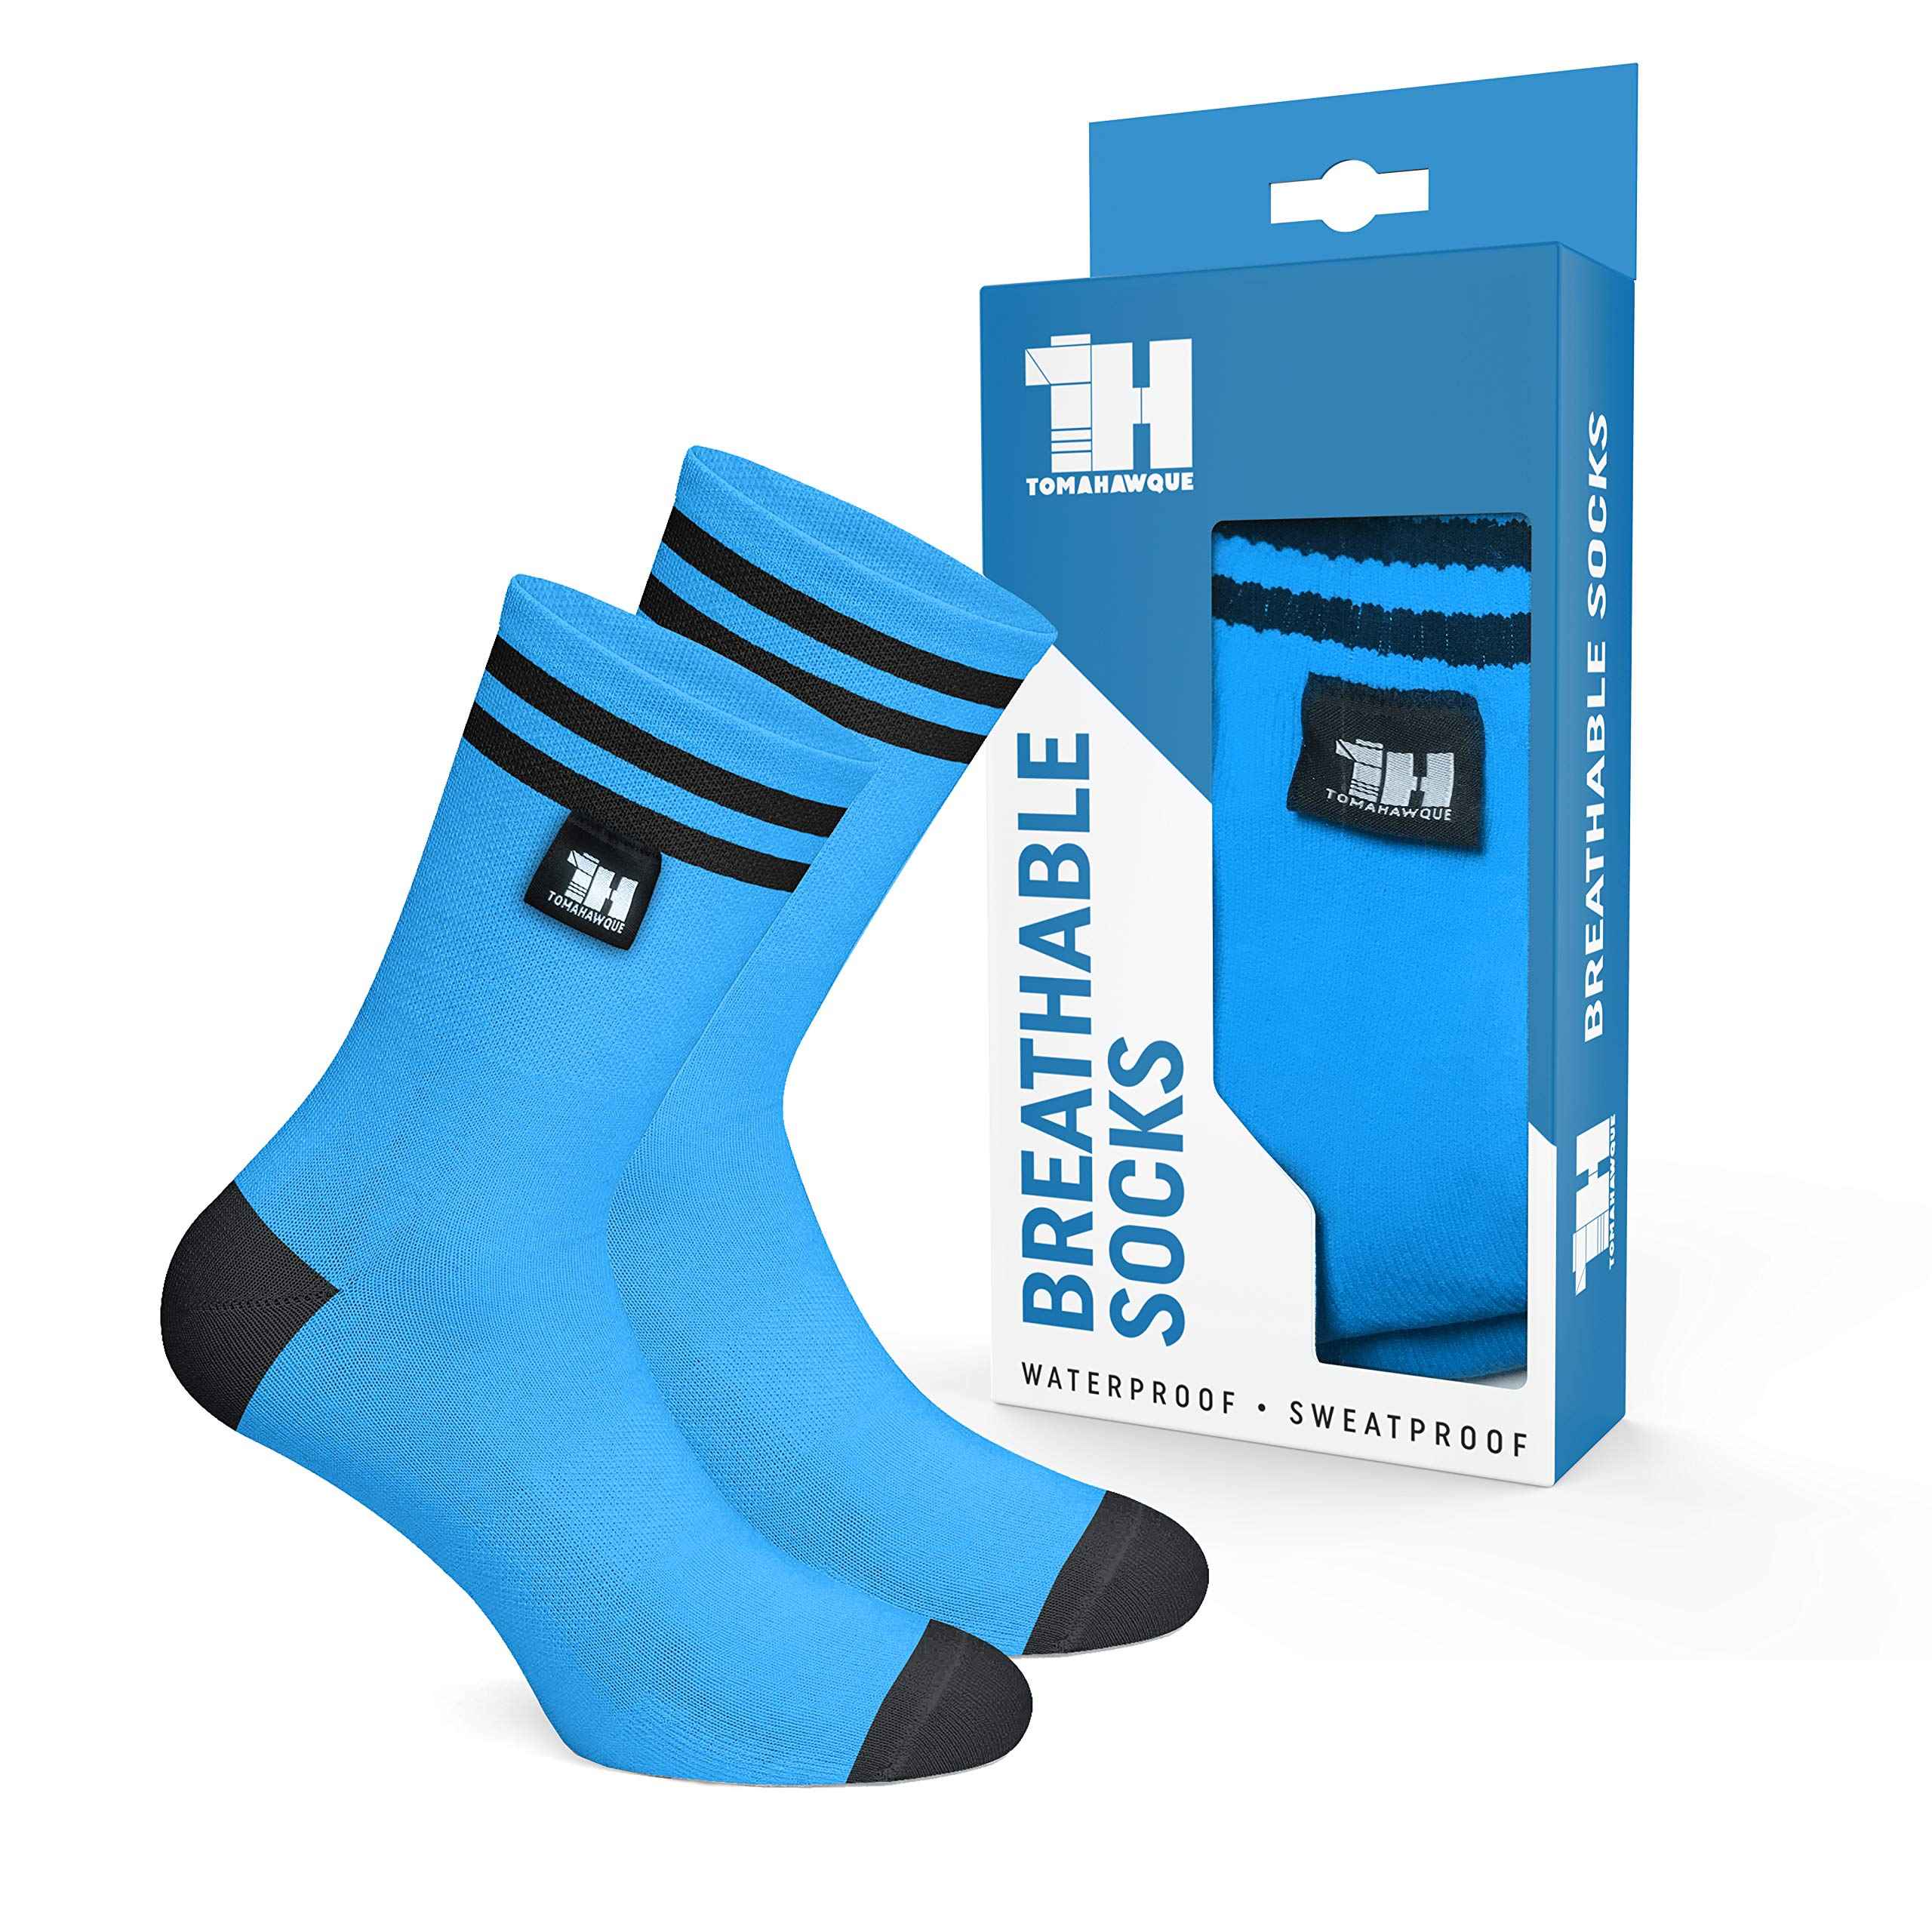 Tomahawque Waterproof Socks for Men, Women | Outdoor Hiking, Fitness, Running by Tomahawque